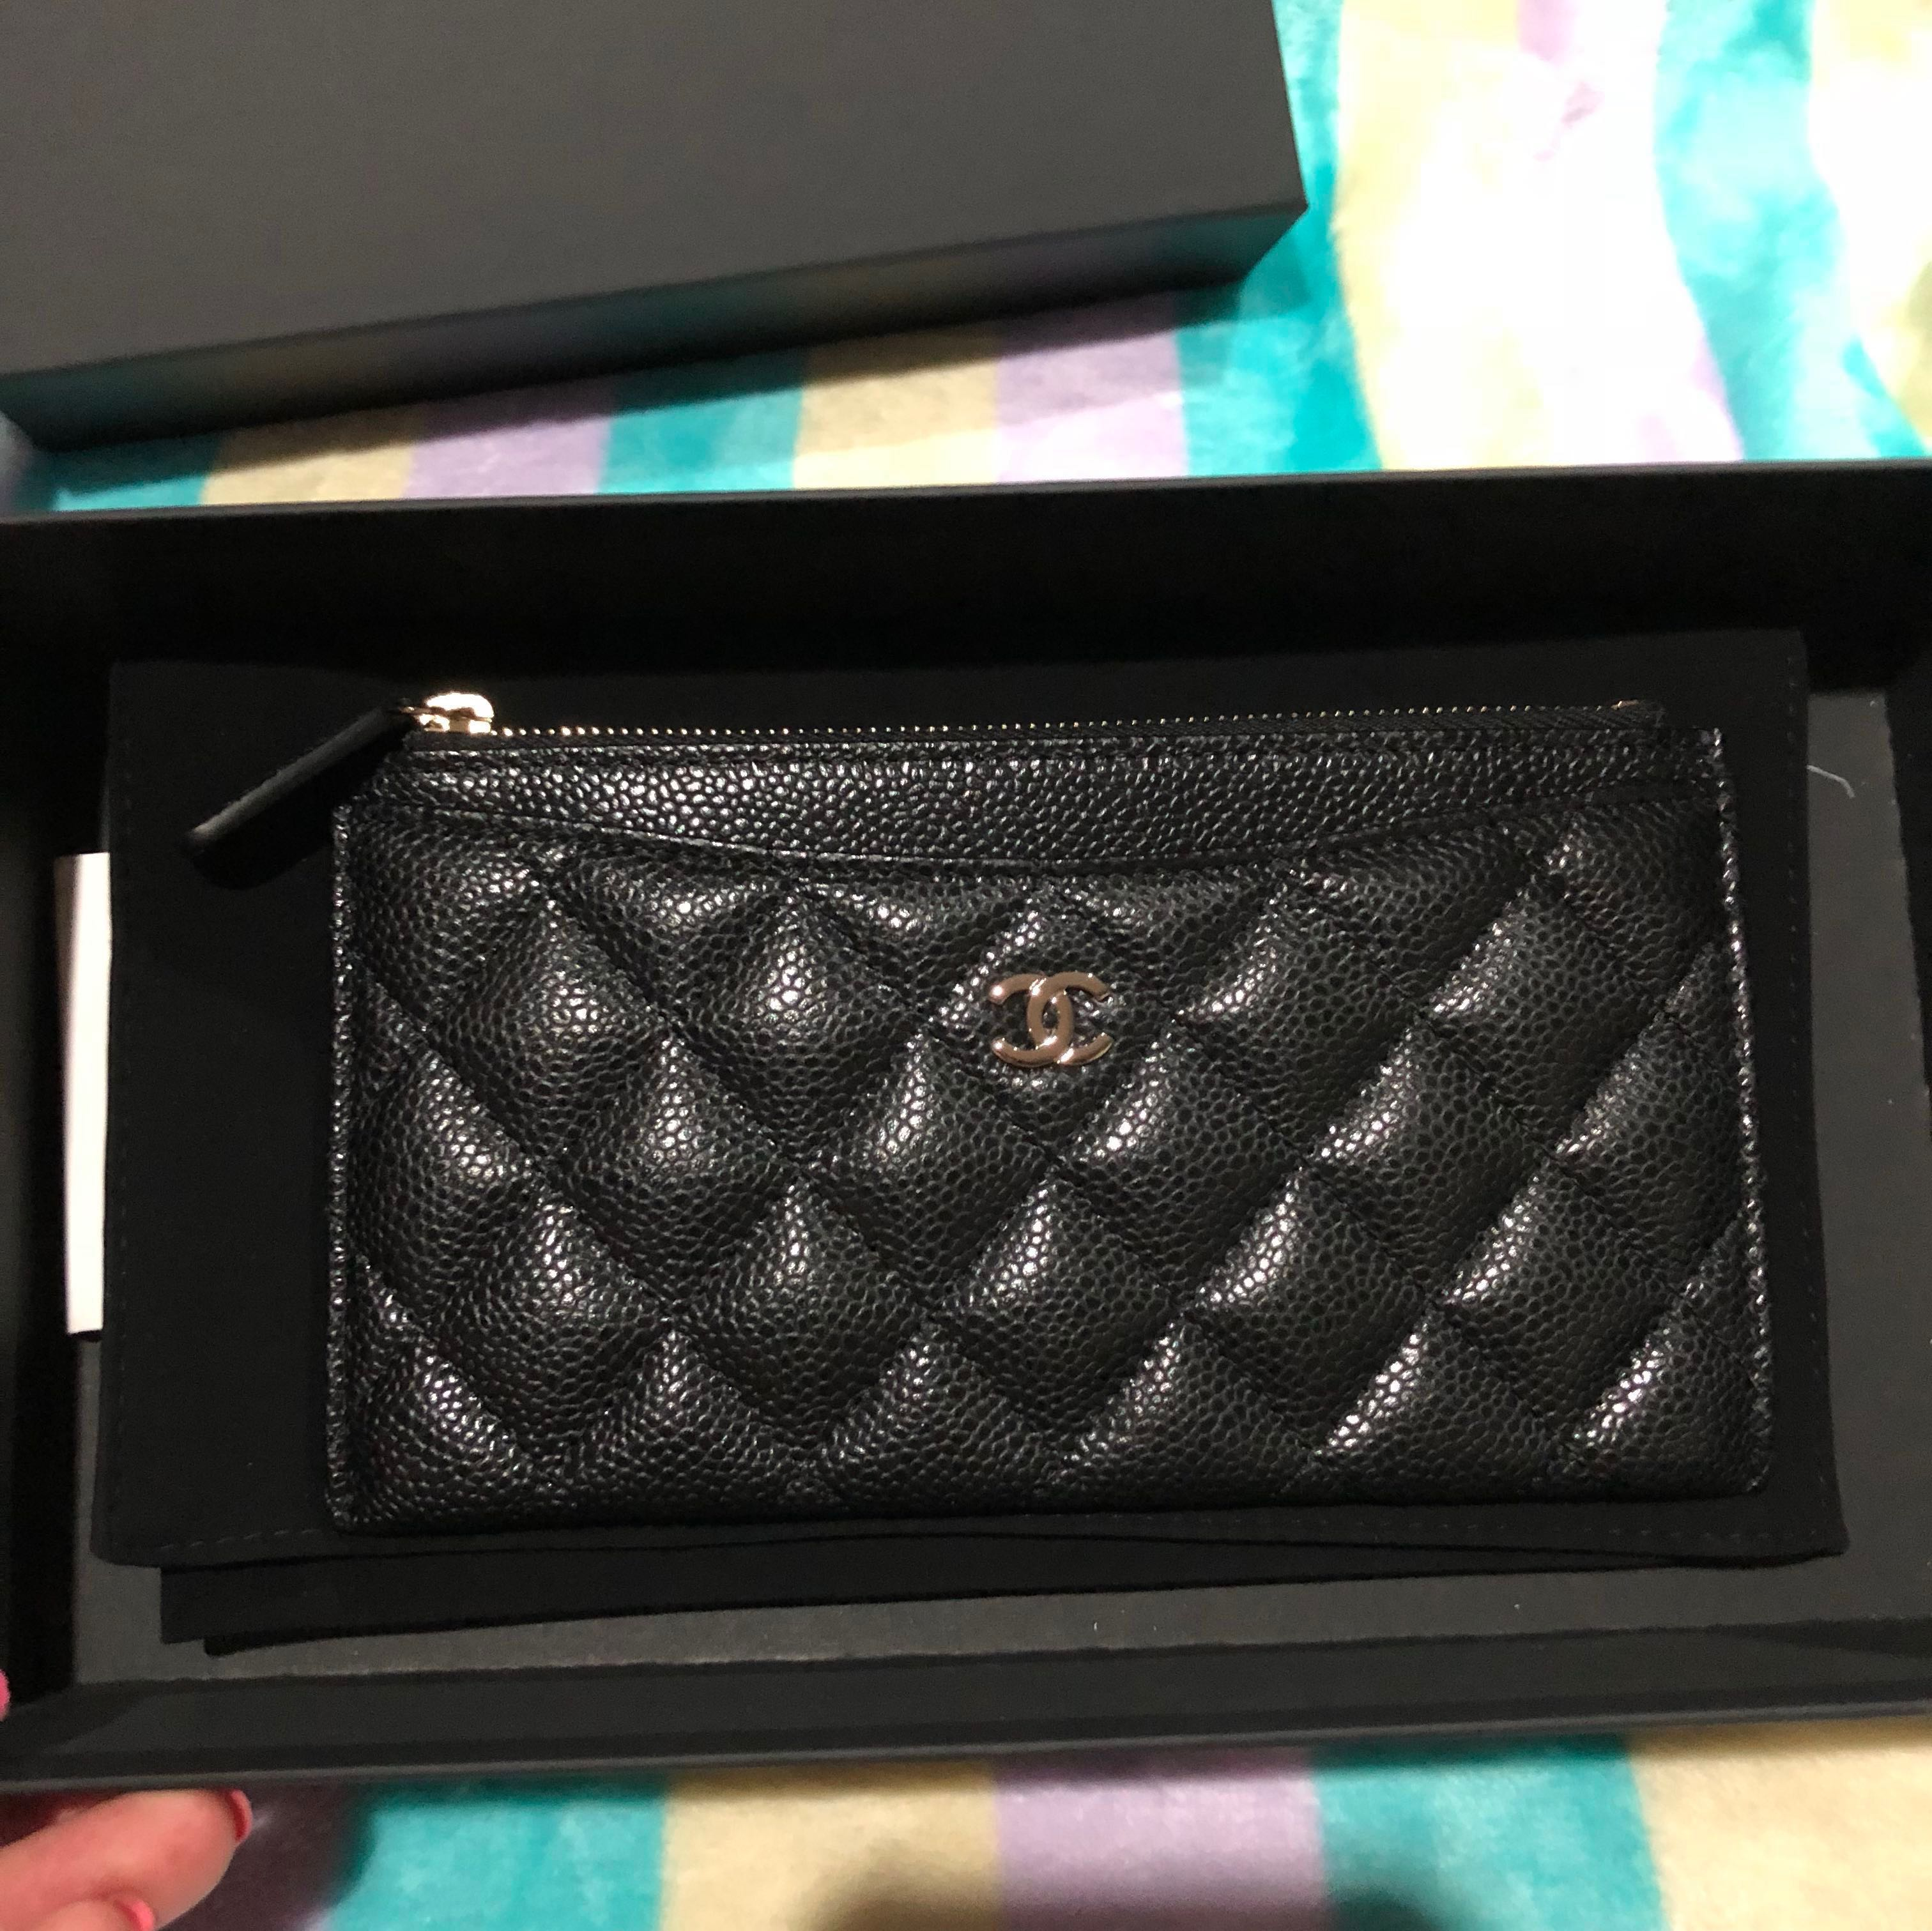 ae73c13aad05 Chanel Miscellaneous Pouch, Luxury, Bags & Wallets, Others on Carousell